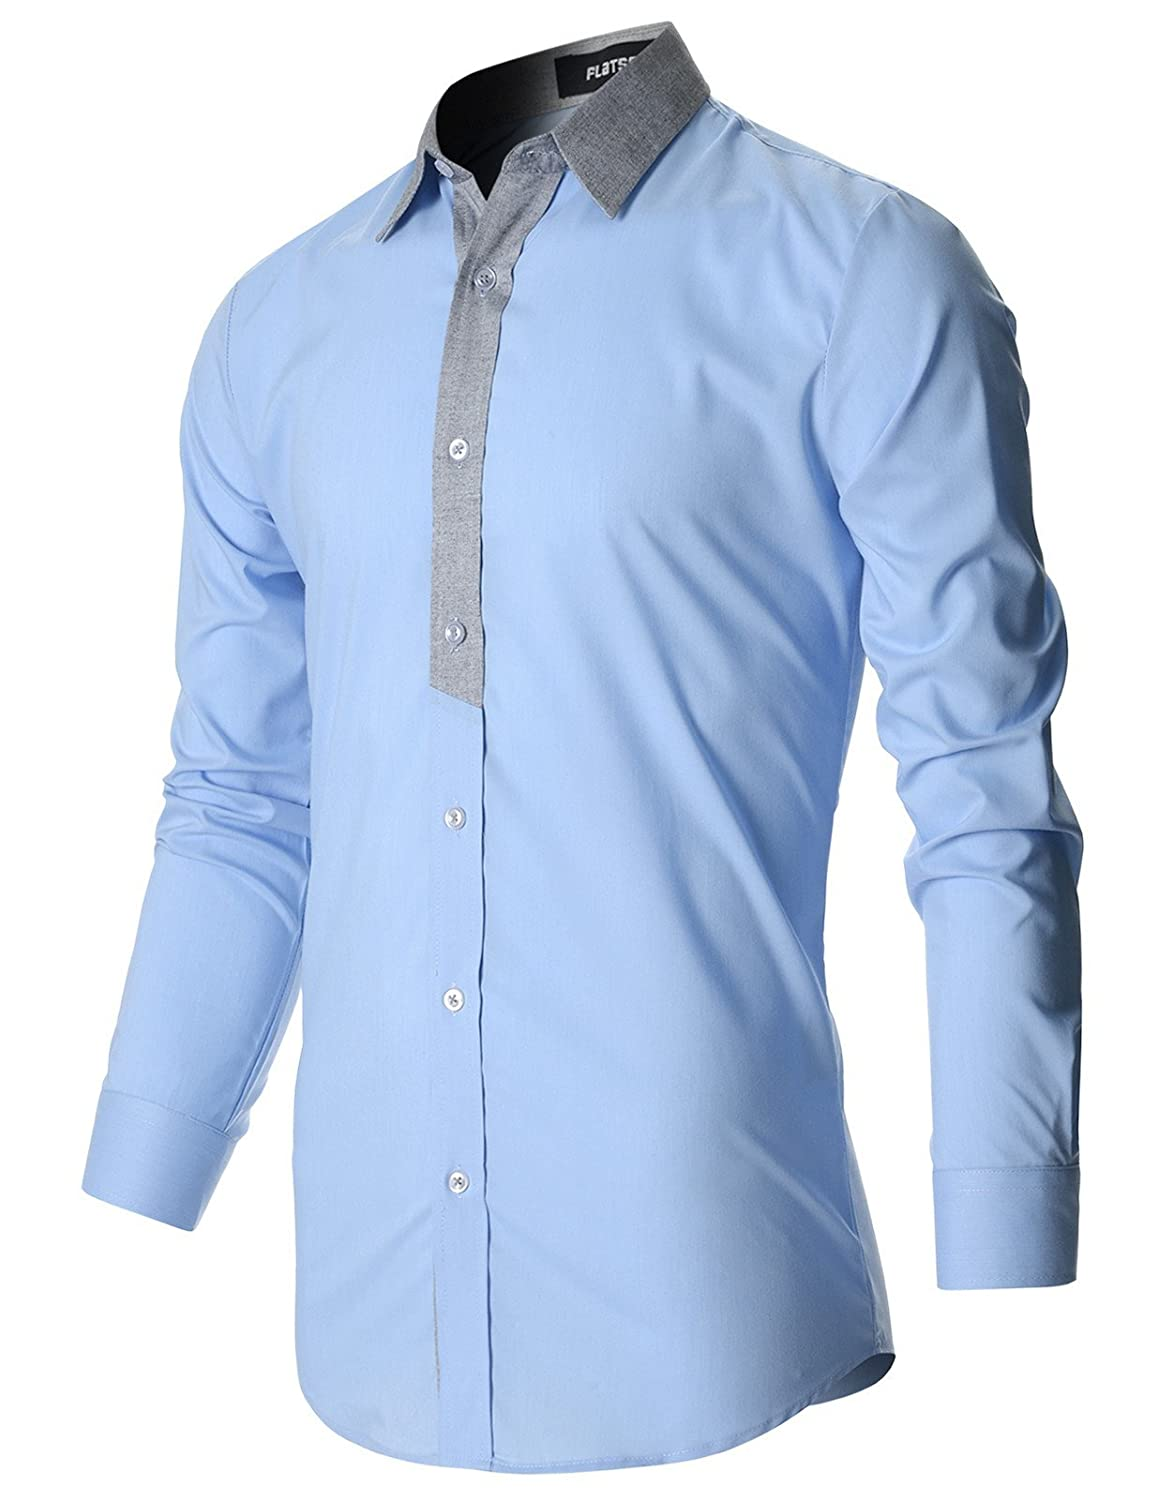 a140823bab043d FLATSEVEN Mens Stylish Casual Shirt Slim Cut at Amazon Men's Clothing store: